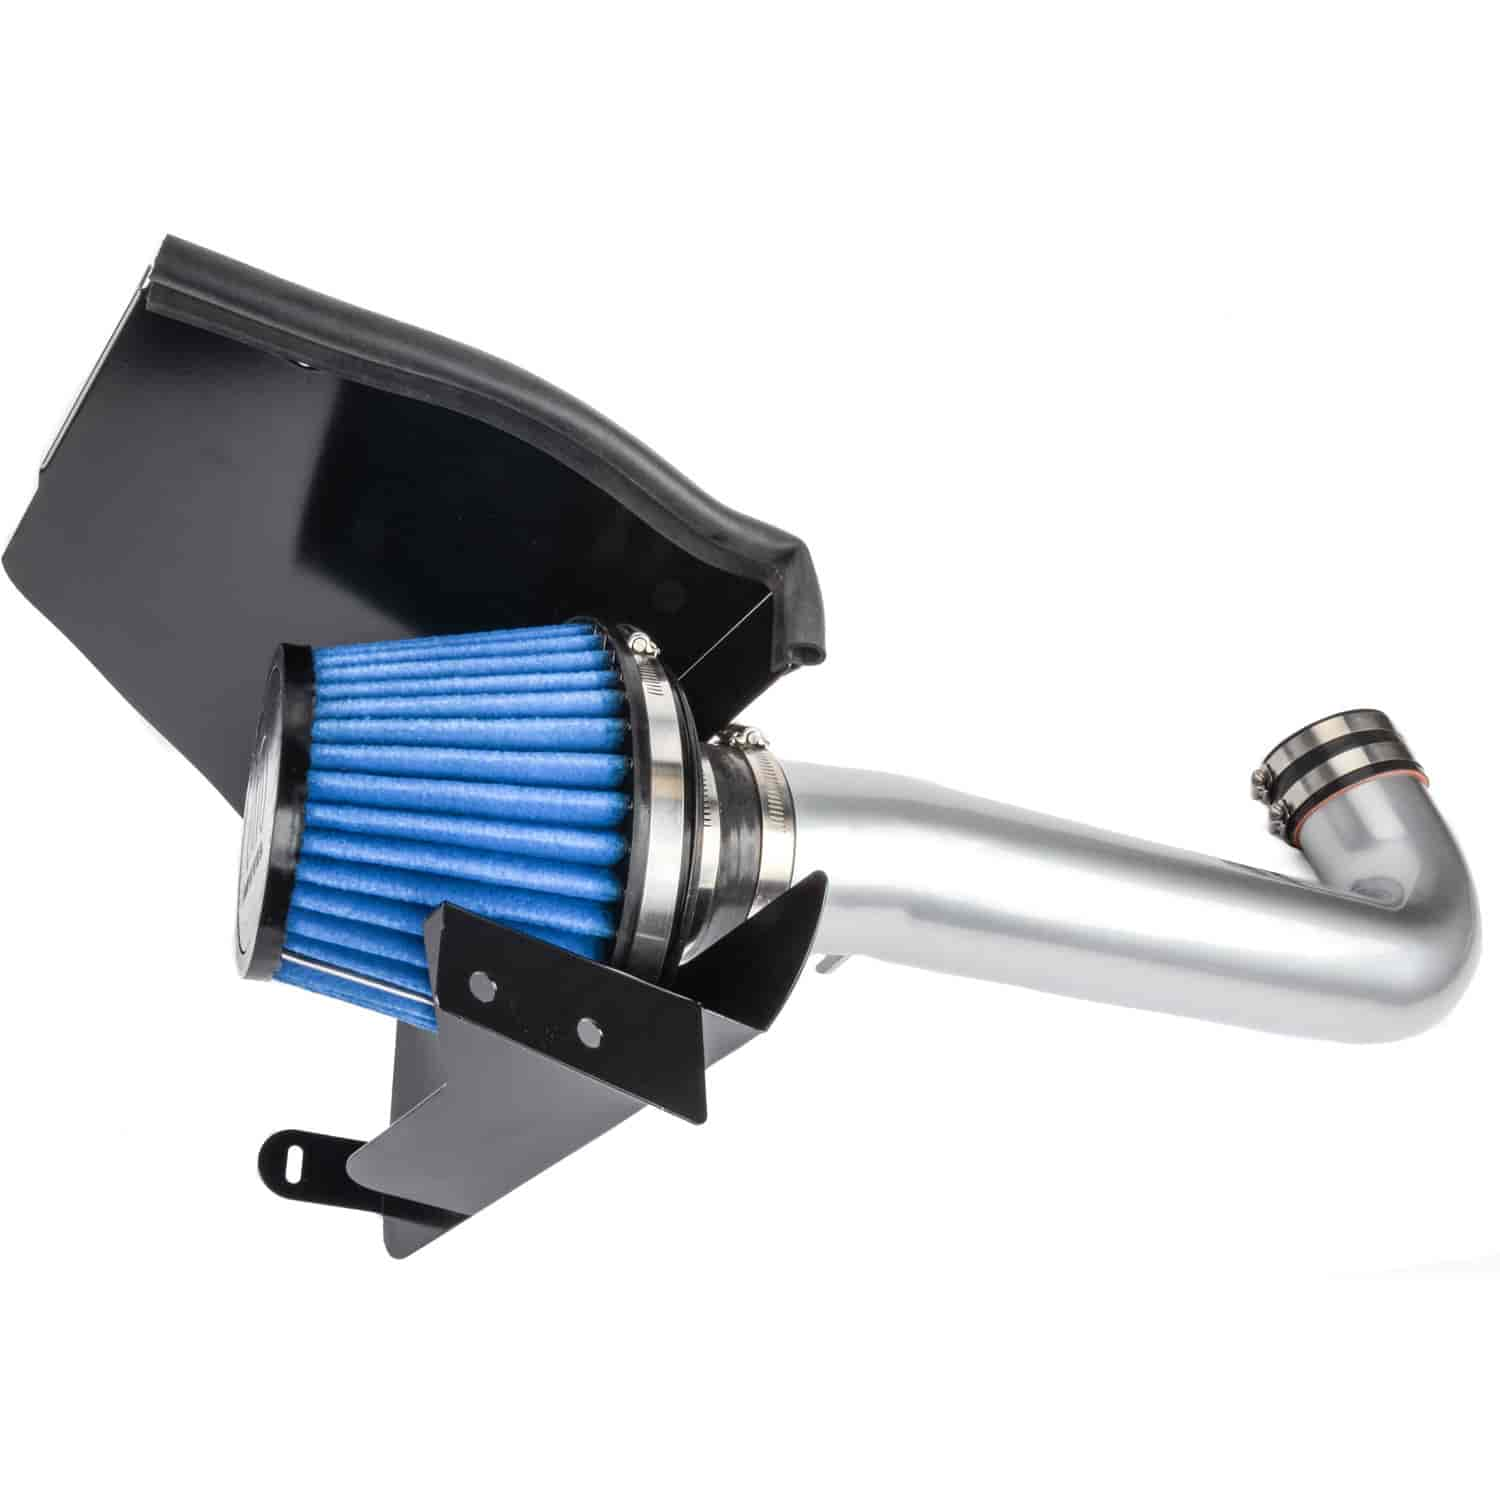 Mopar Performance 77060010AB - Mopar Performance Cold Air Intake Systems - Jeep